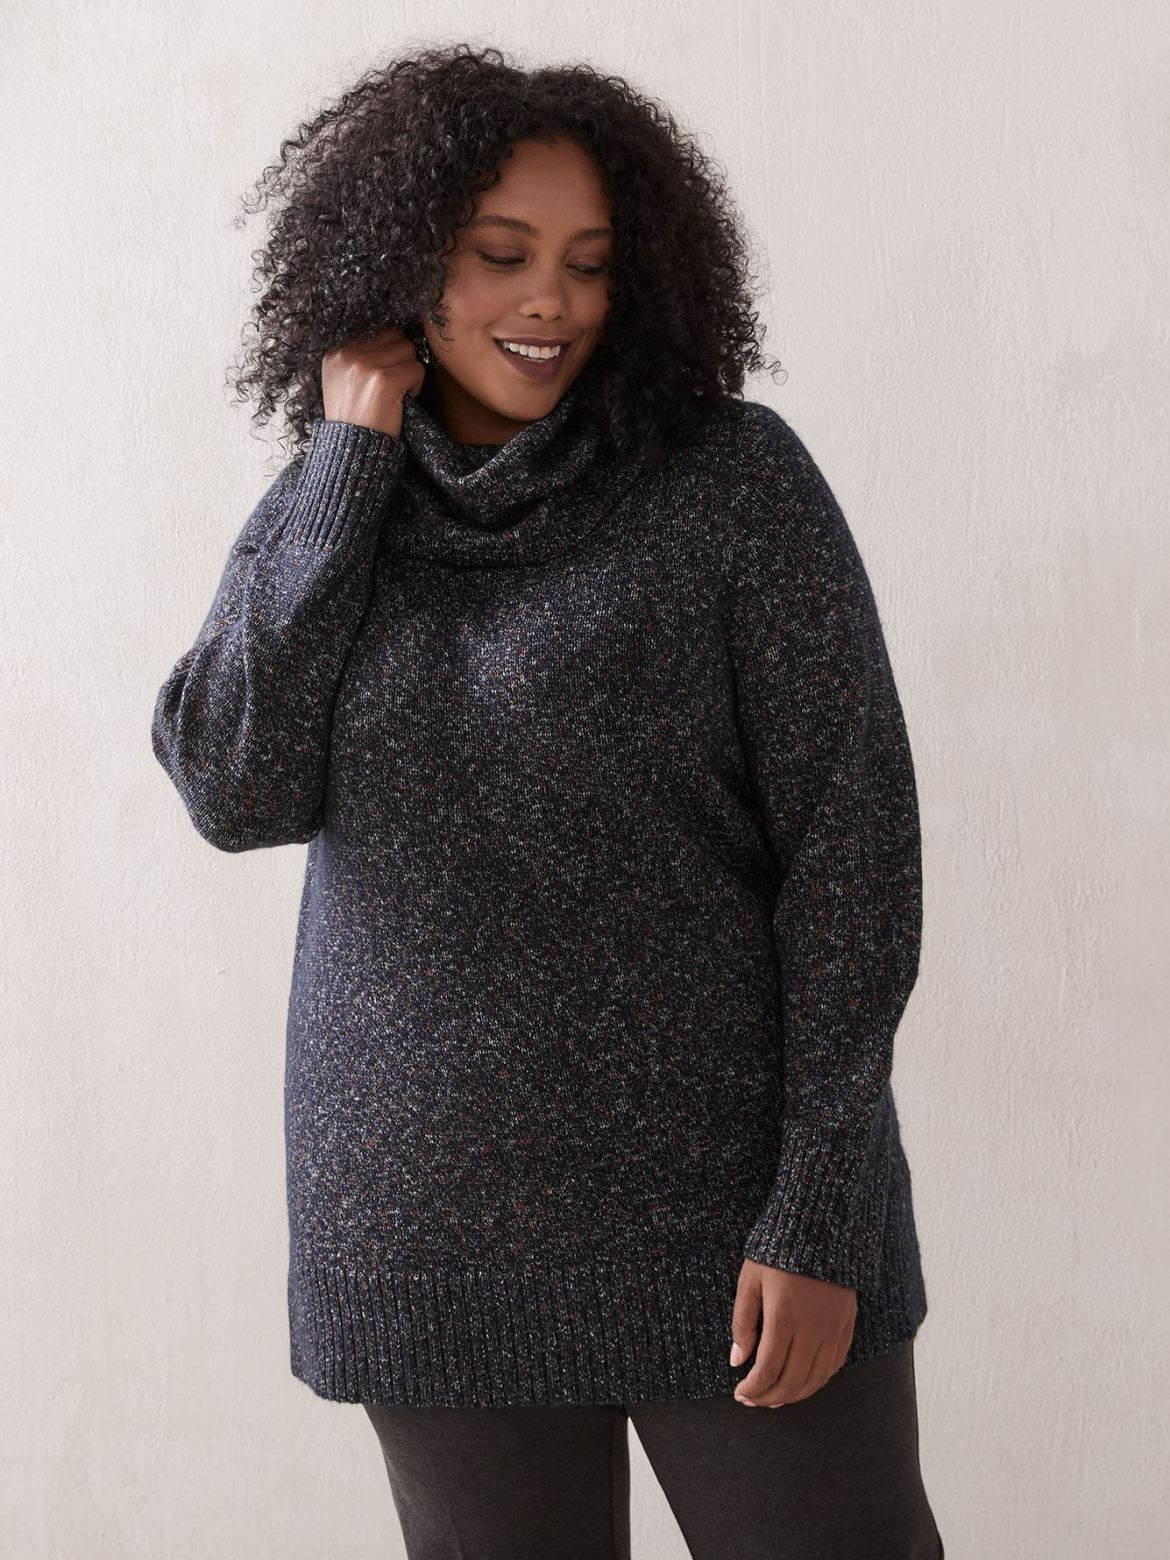 Cowl-Neck Tunic Sweater - In Every Story